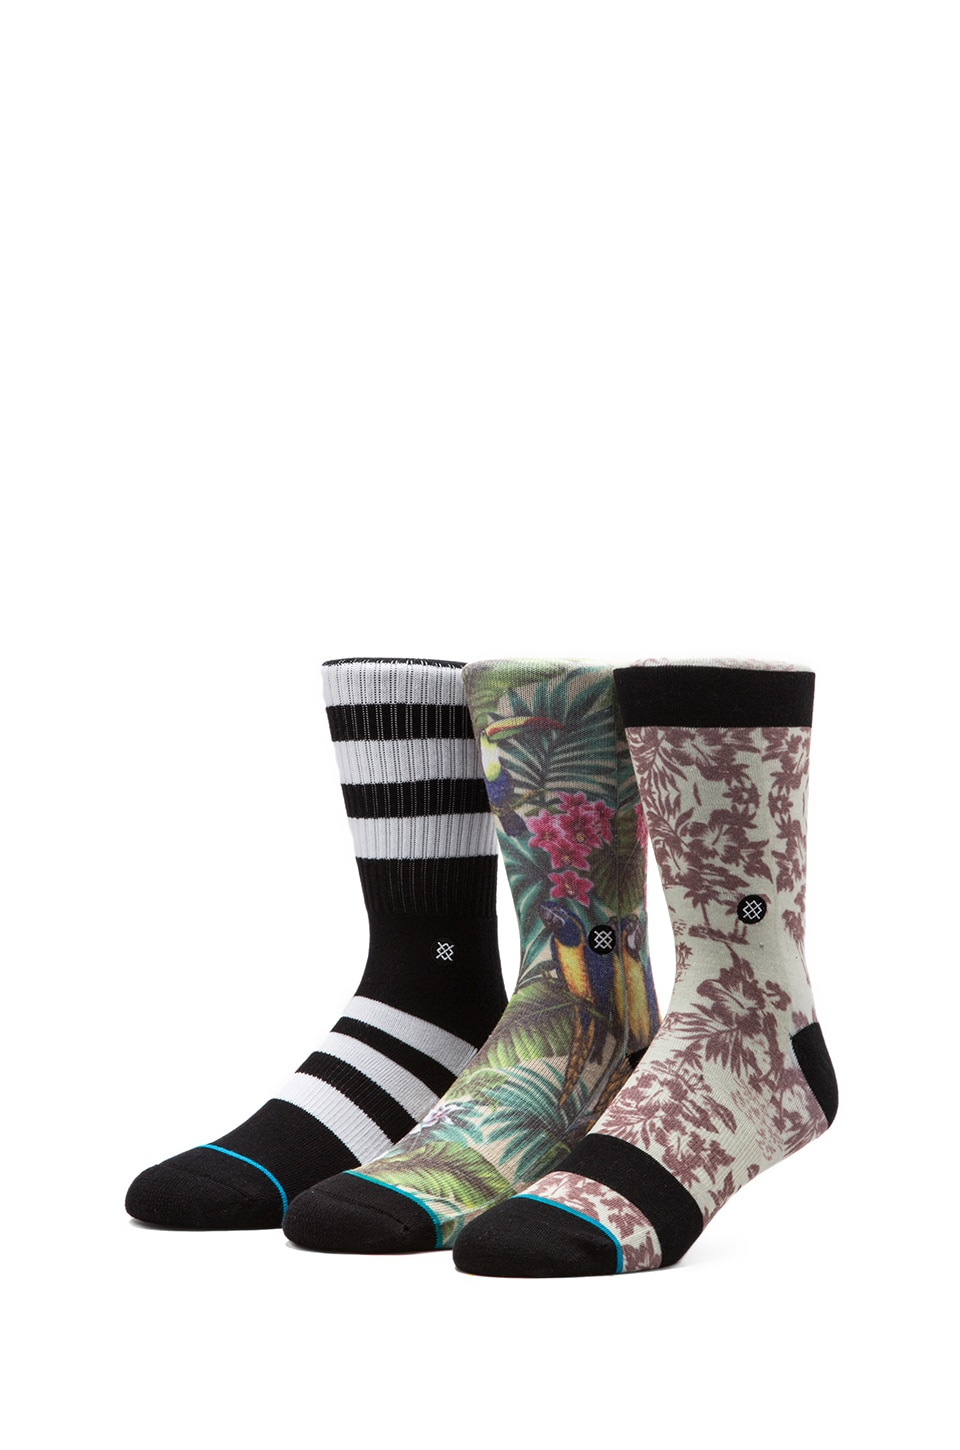 Stance 3-Pack in Waipio/ Shift/ 20 Eyes